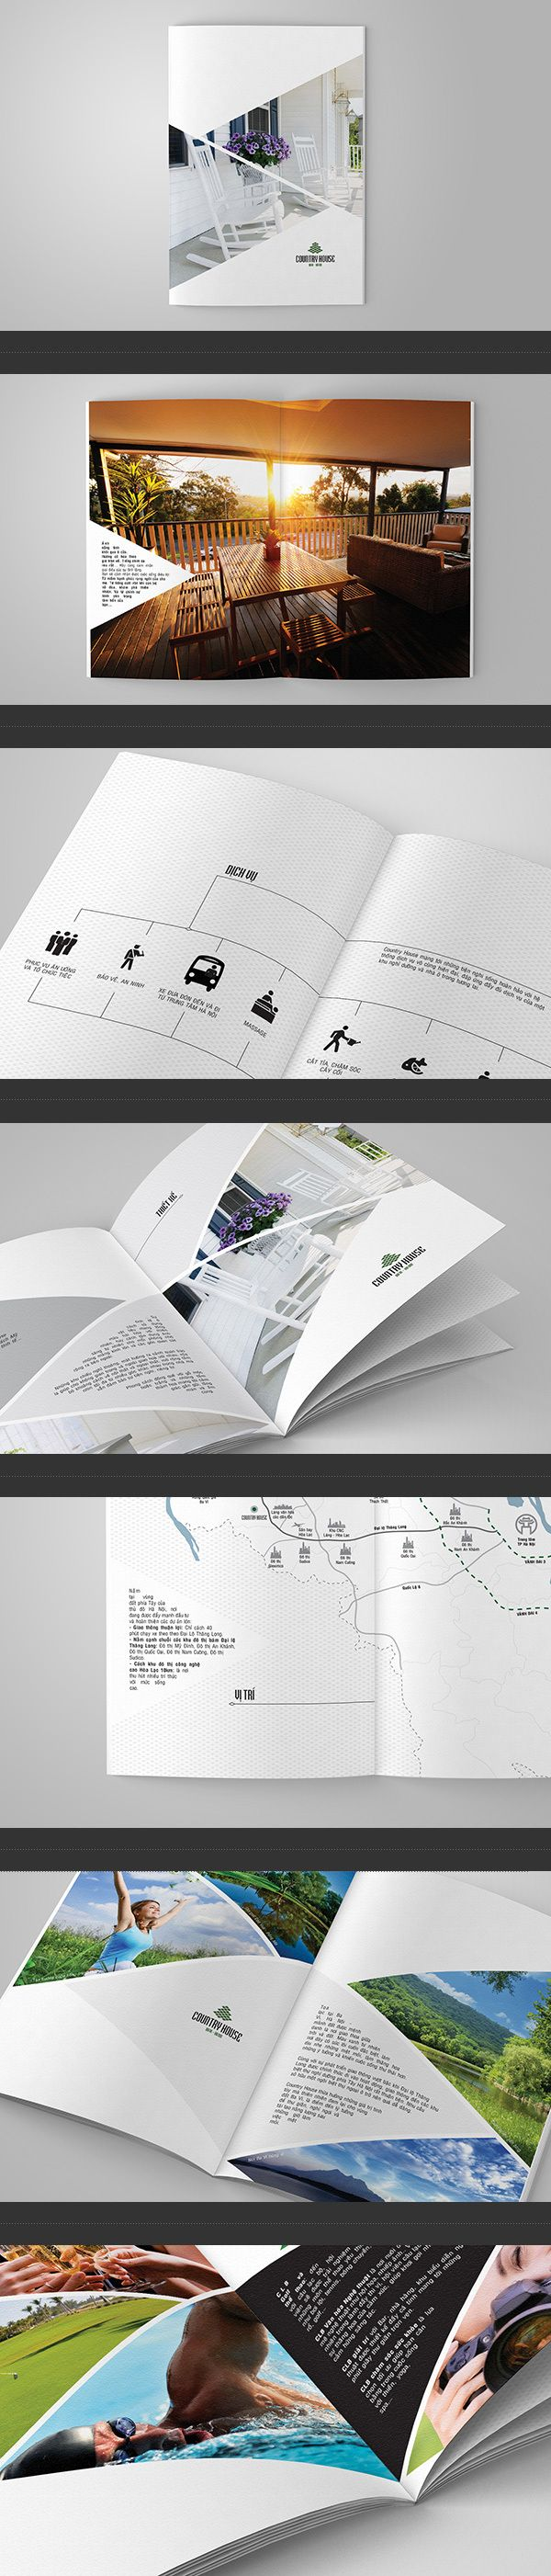 Country House - Real Estate Brochure by G12 Media, via Behance